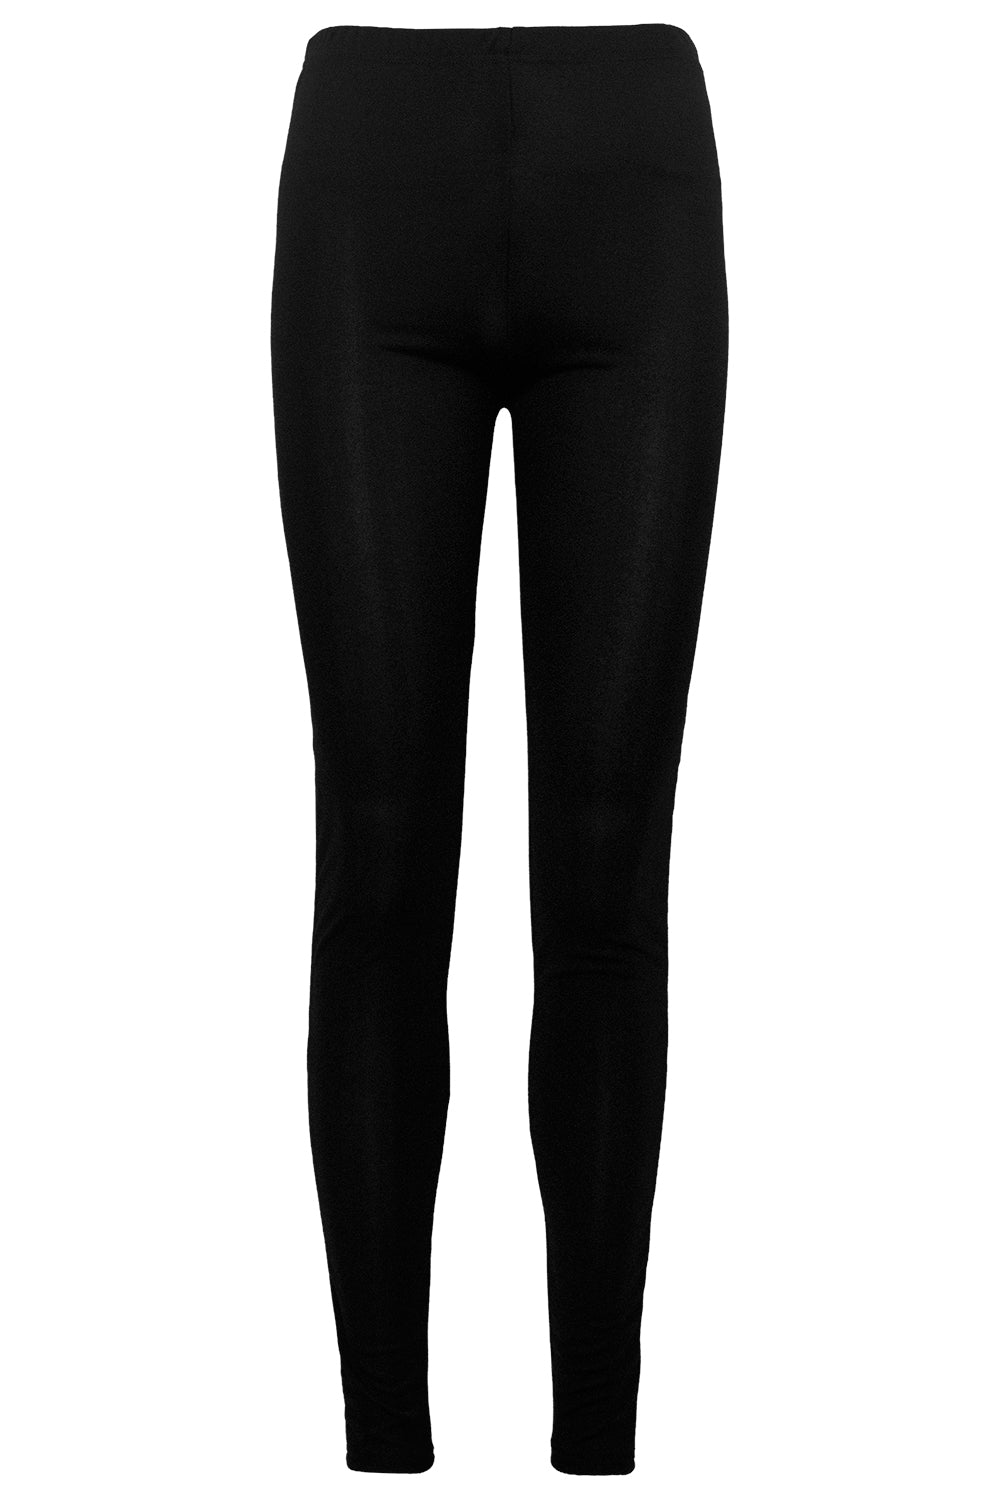 High Waist Basic Crepe Black Leggings - bejealous-com